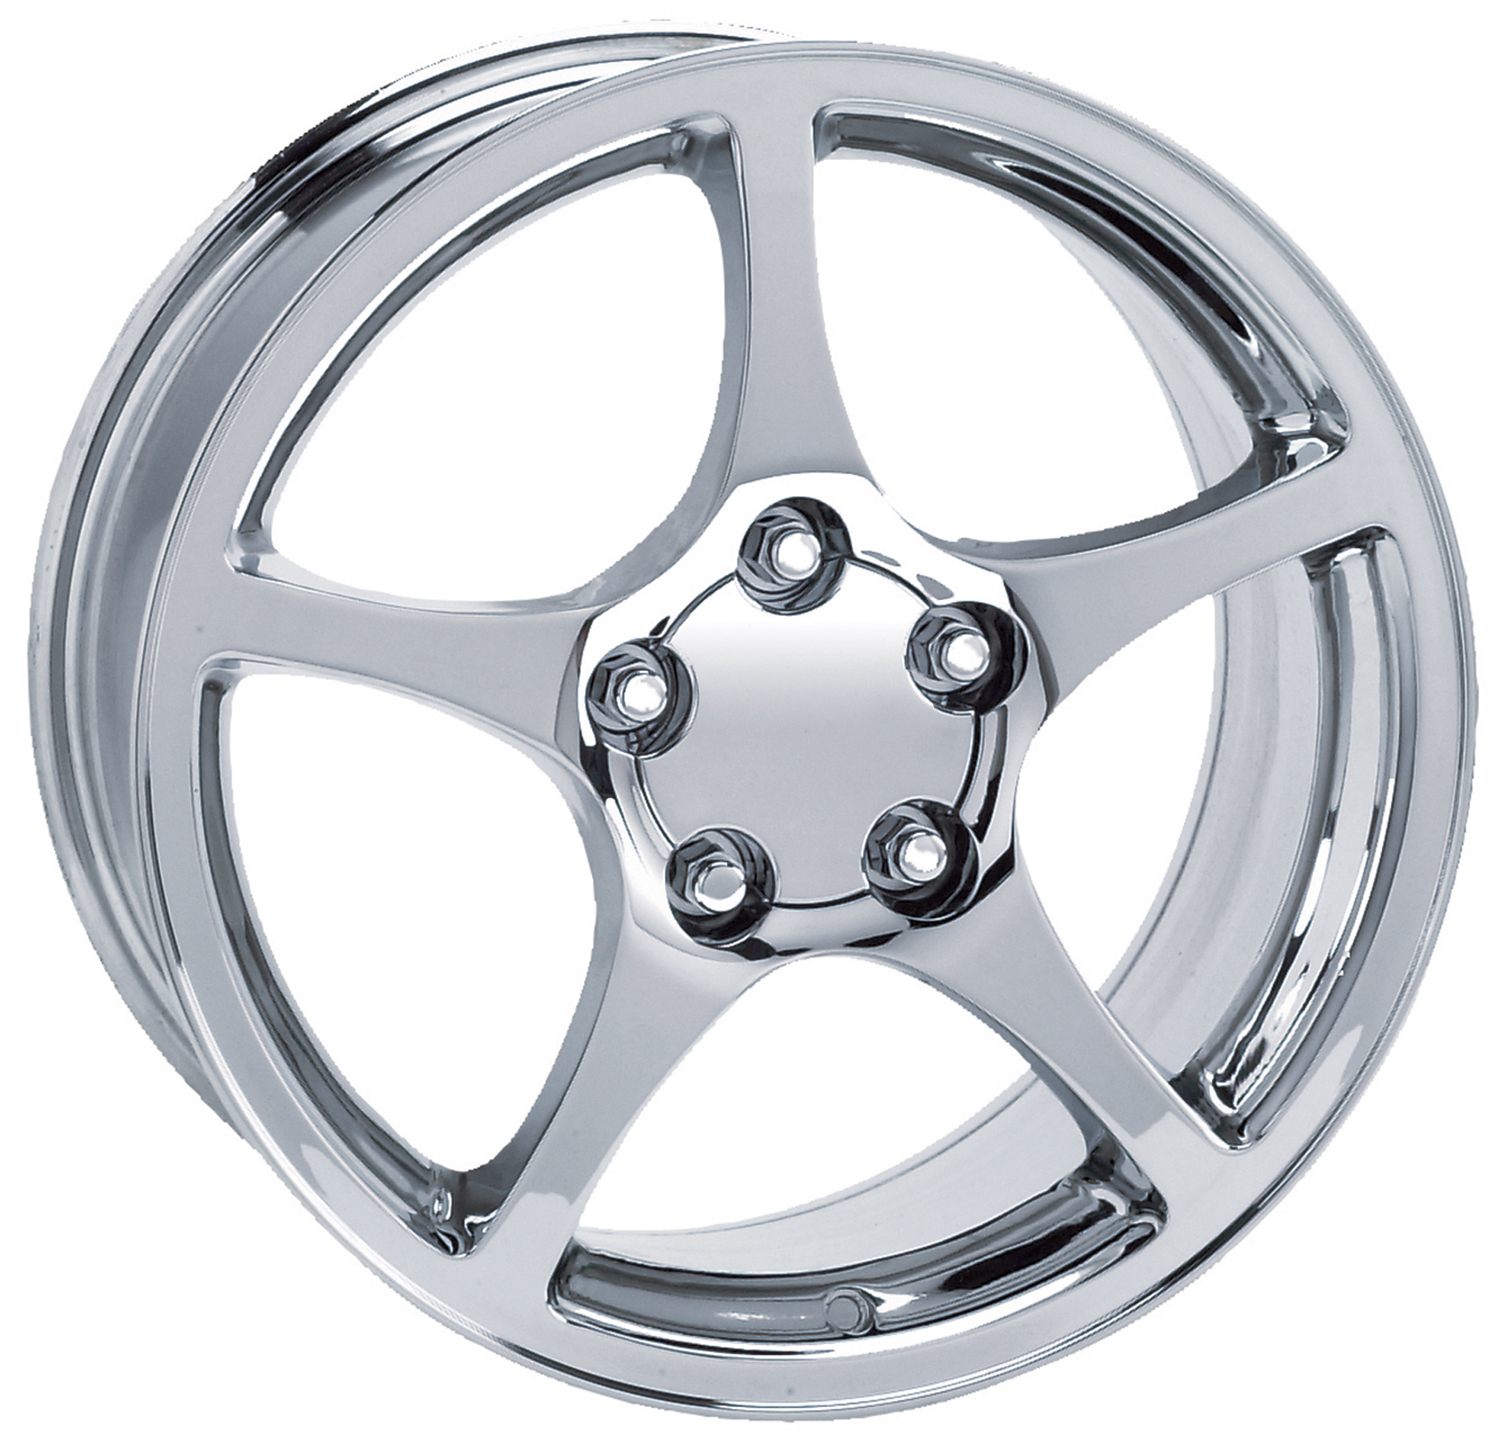 Chevrolet Corvette 1997-2000 18x10.5 5x4.75 +58 - 2000 Style Wheel - Chrome With Cap